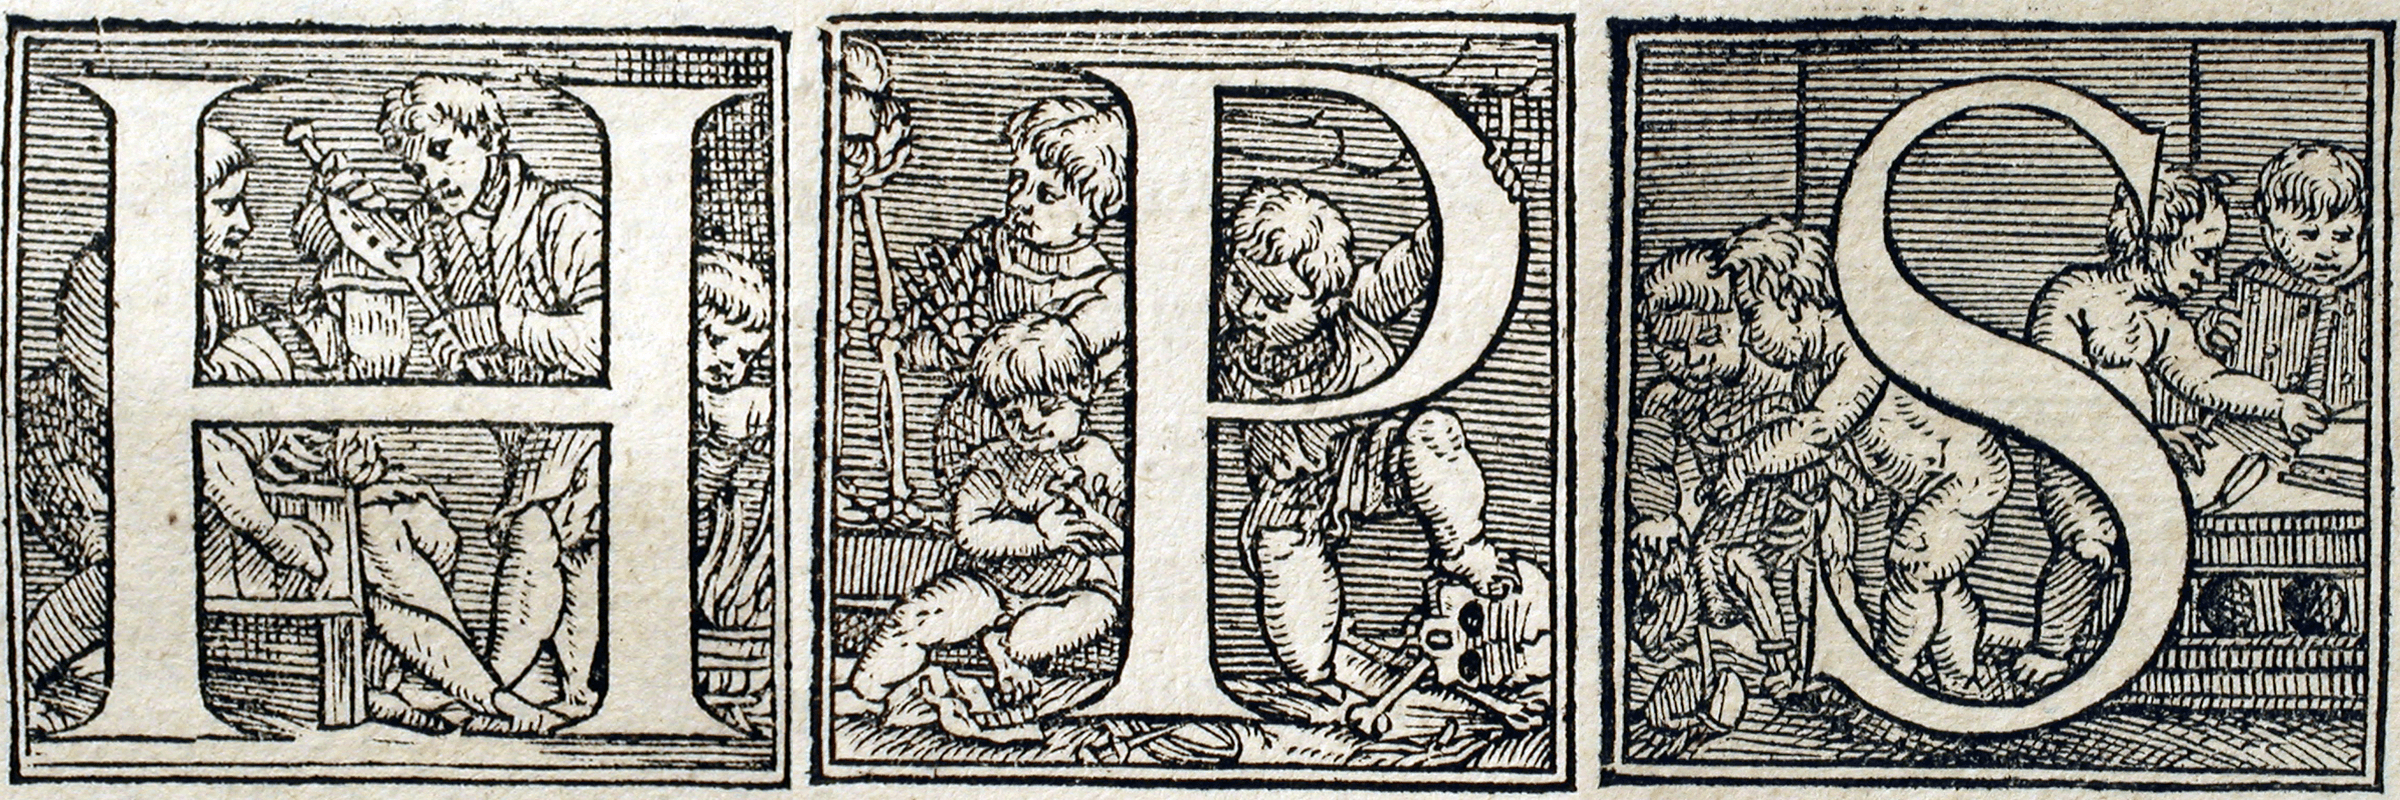 "Ornate ""drop cap"" letters for H, P and S in black and white, adorned by illustrations of practitioners of medicine, cherubim, and book makers."